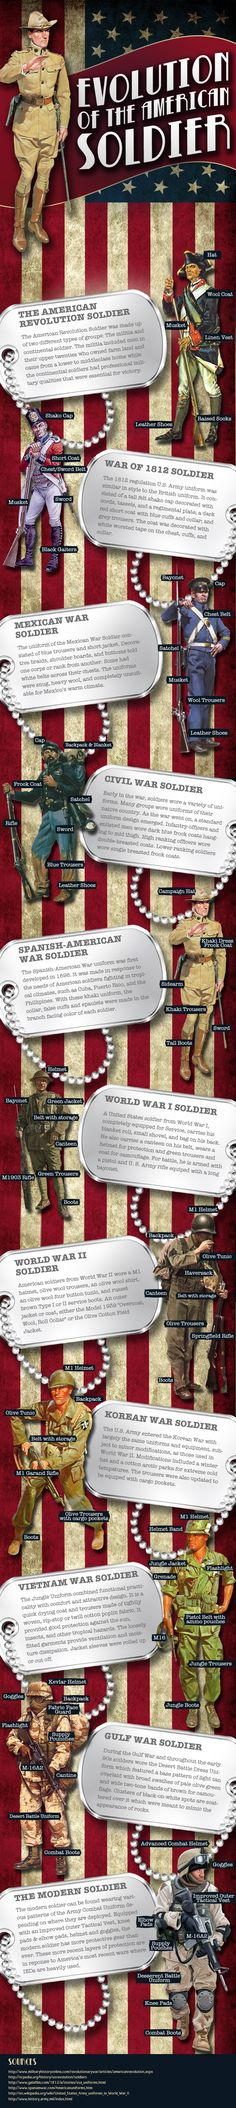 Dessertpin - The Evolution of the American Soldier's Uniform (Infographic) Military Veterans, Military Life, Military History, Home Of The Brave, American Soldiers, God Bless America, American Revolution, World History, American History